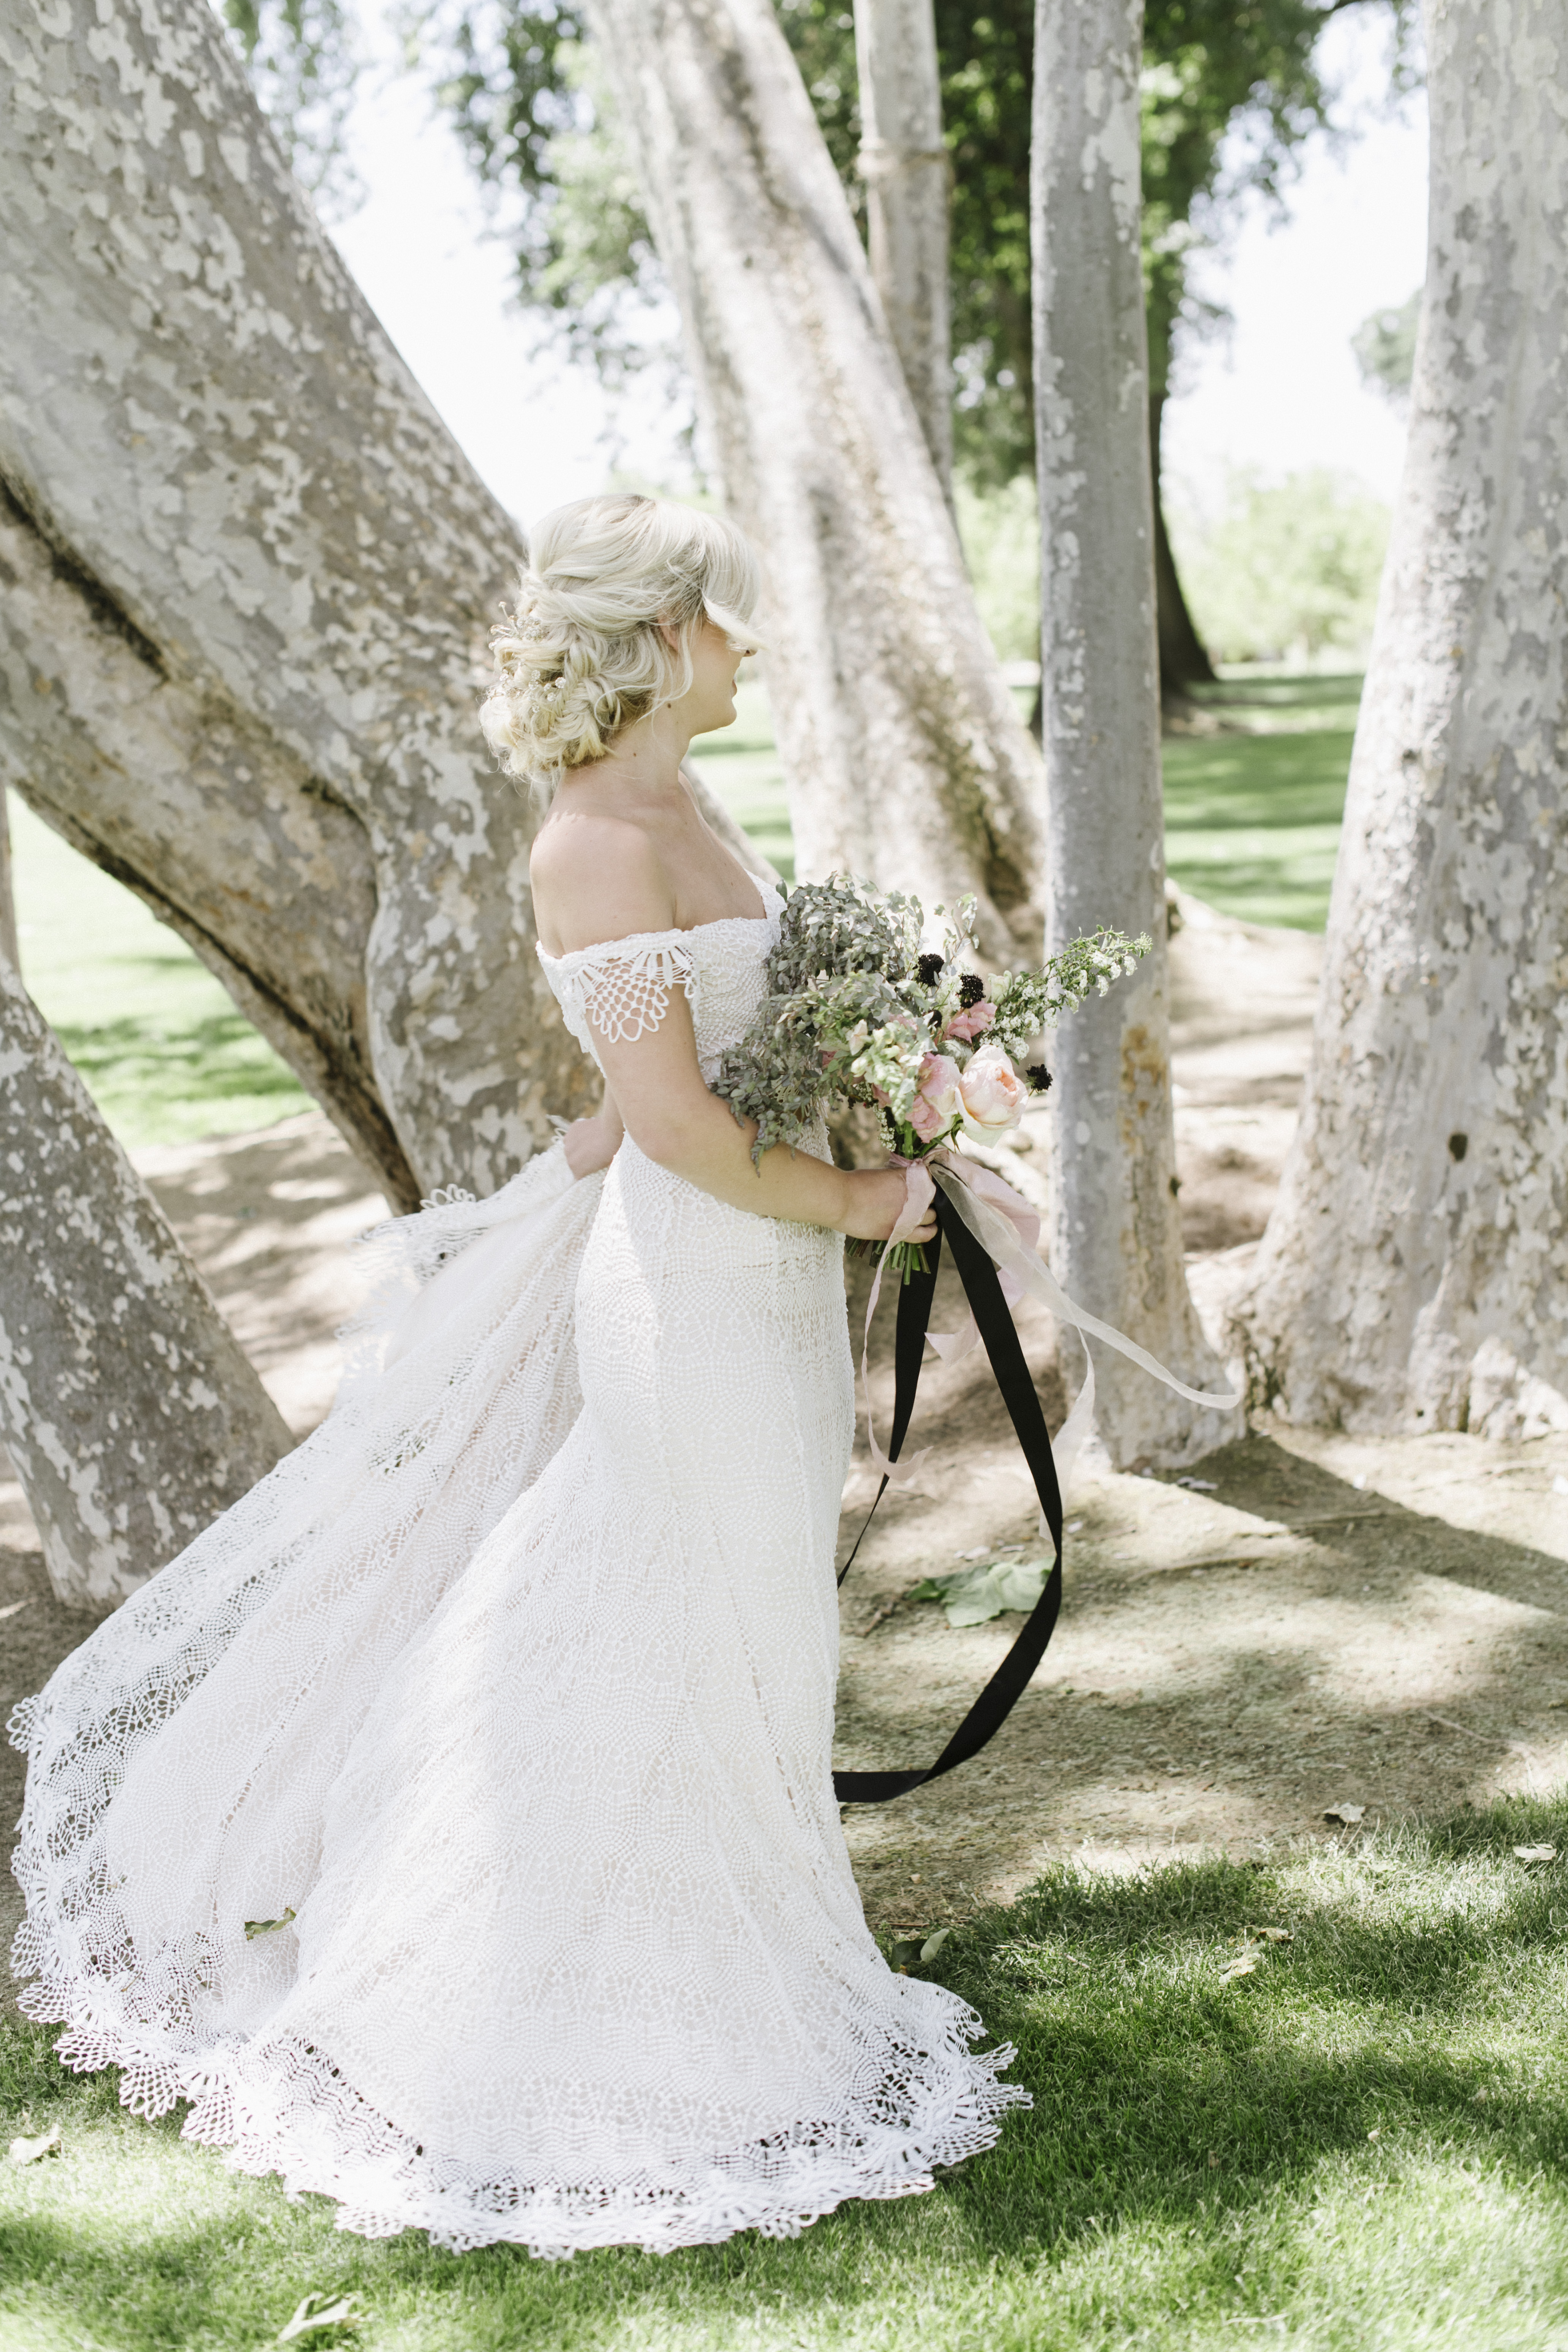 5 Keys to Building a Strong Bridal Business